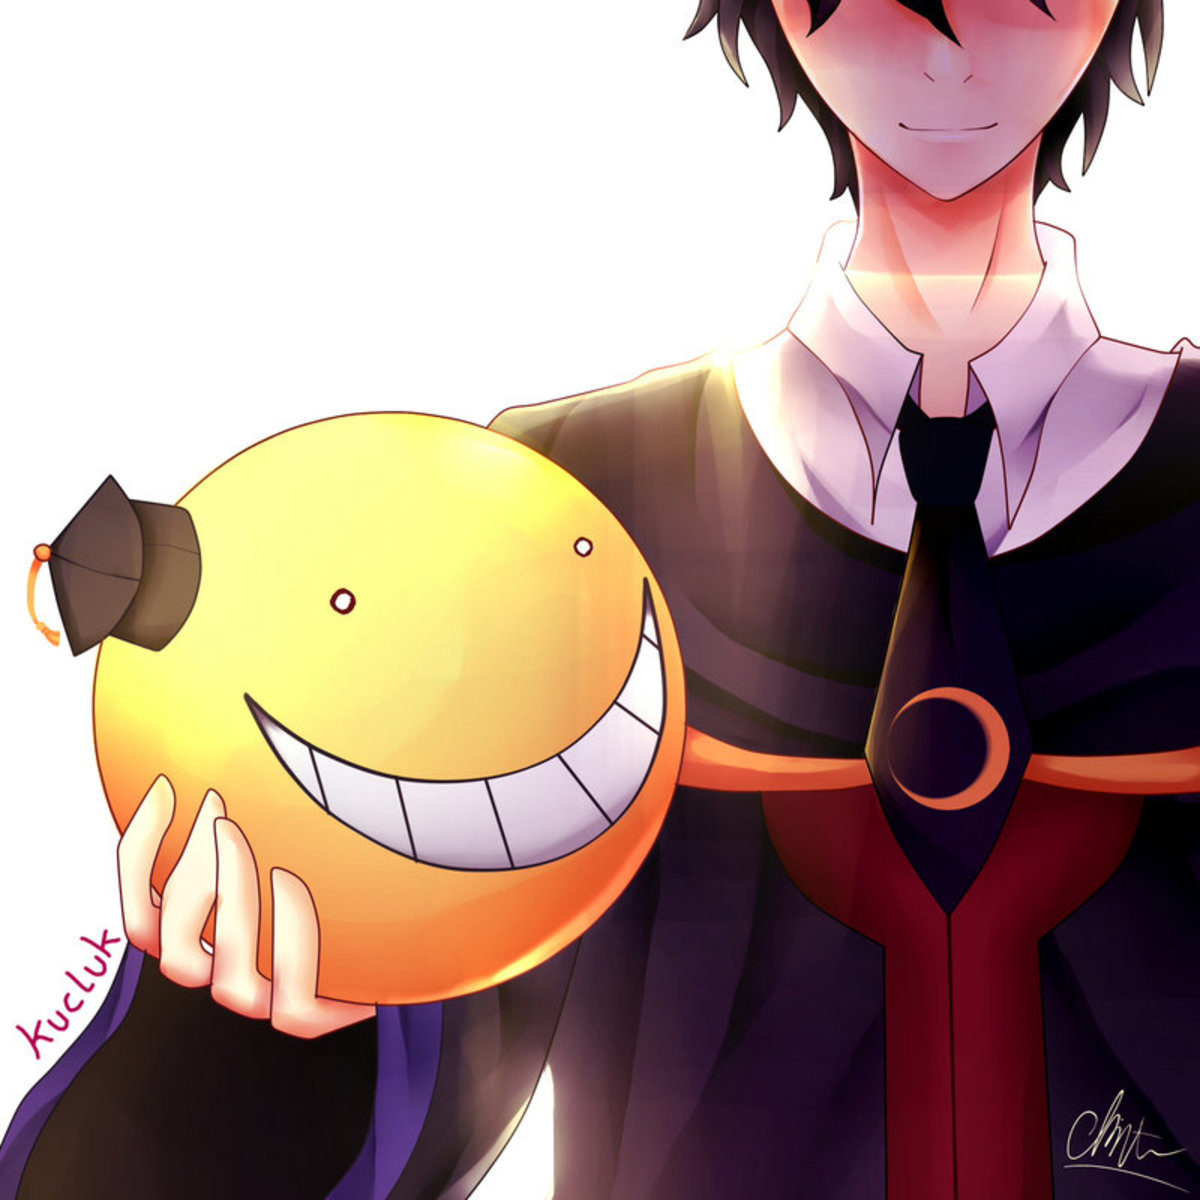 Korosensei in his human form.